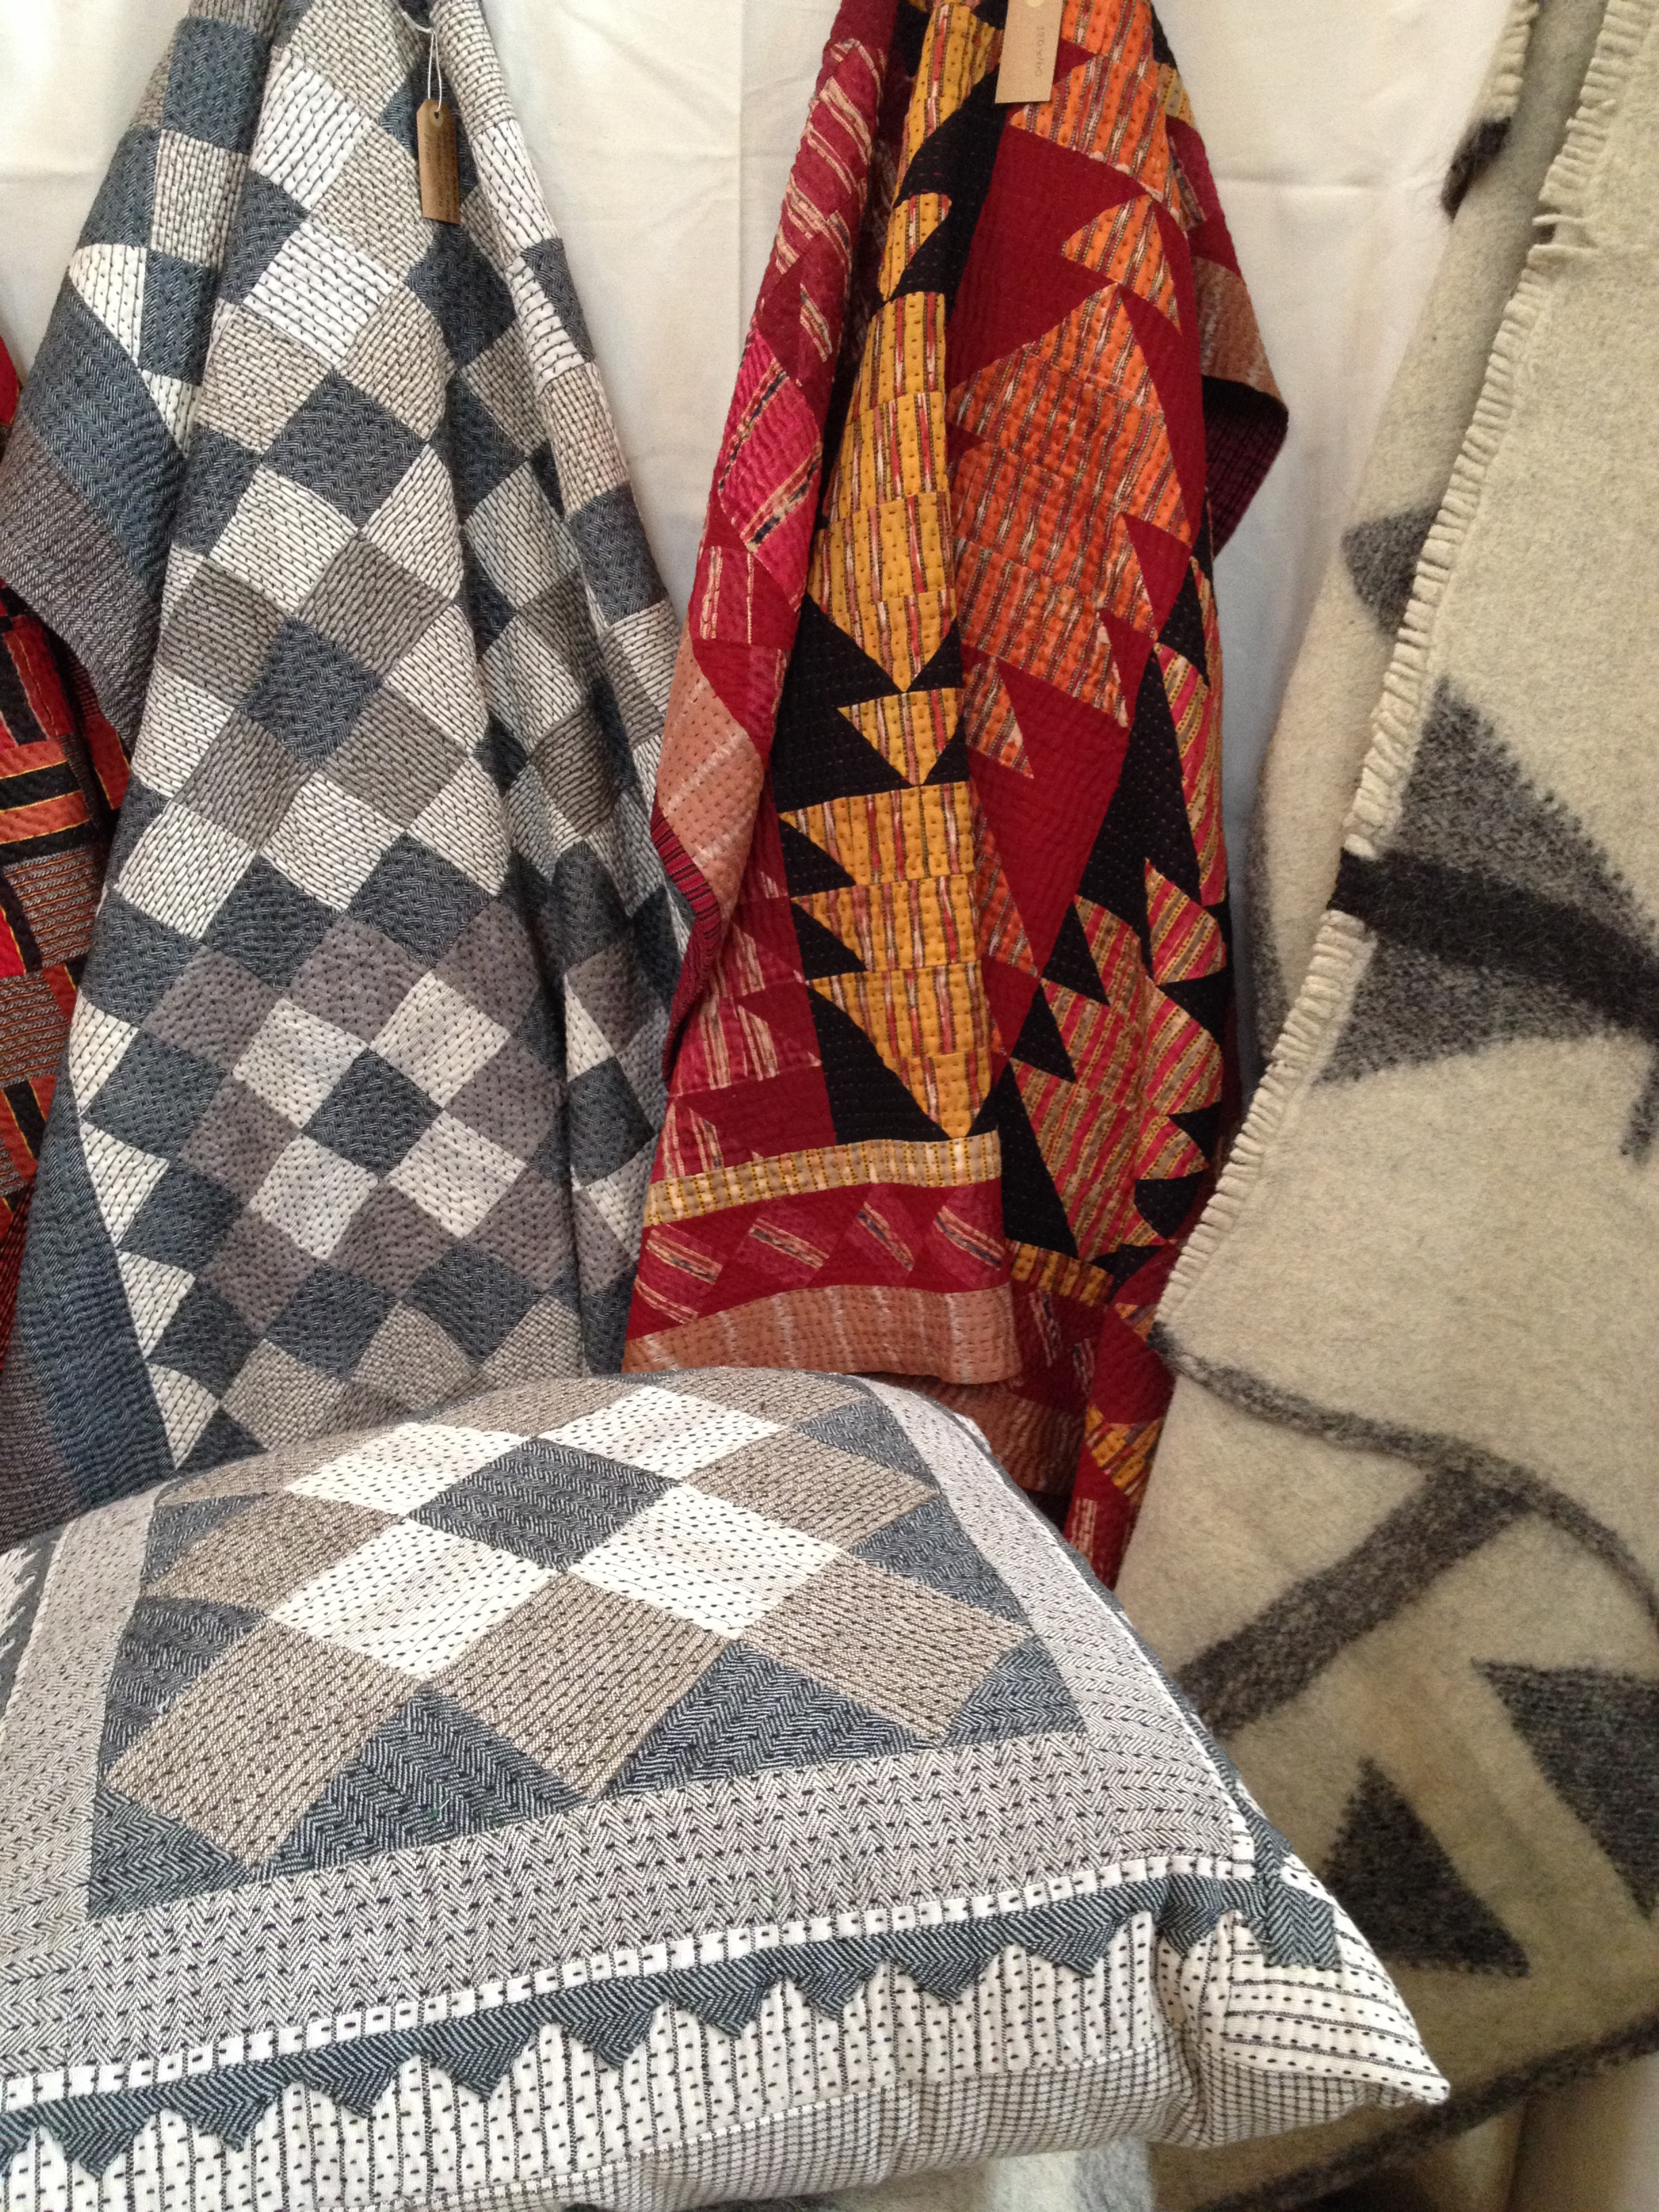 Patchwork quilts and radhi rug